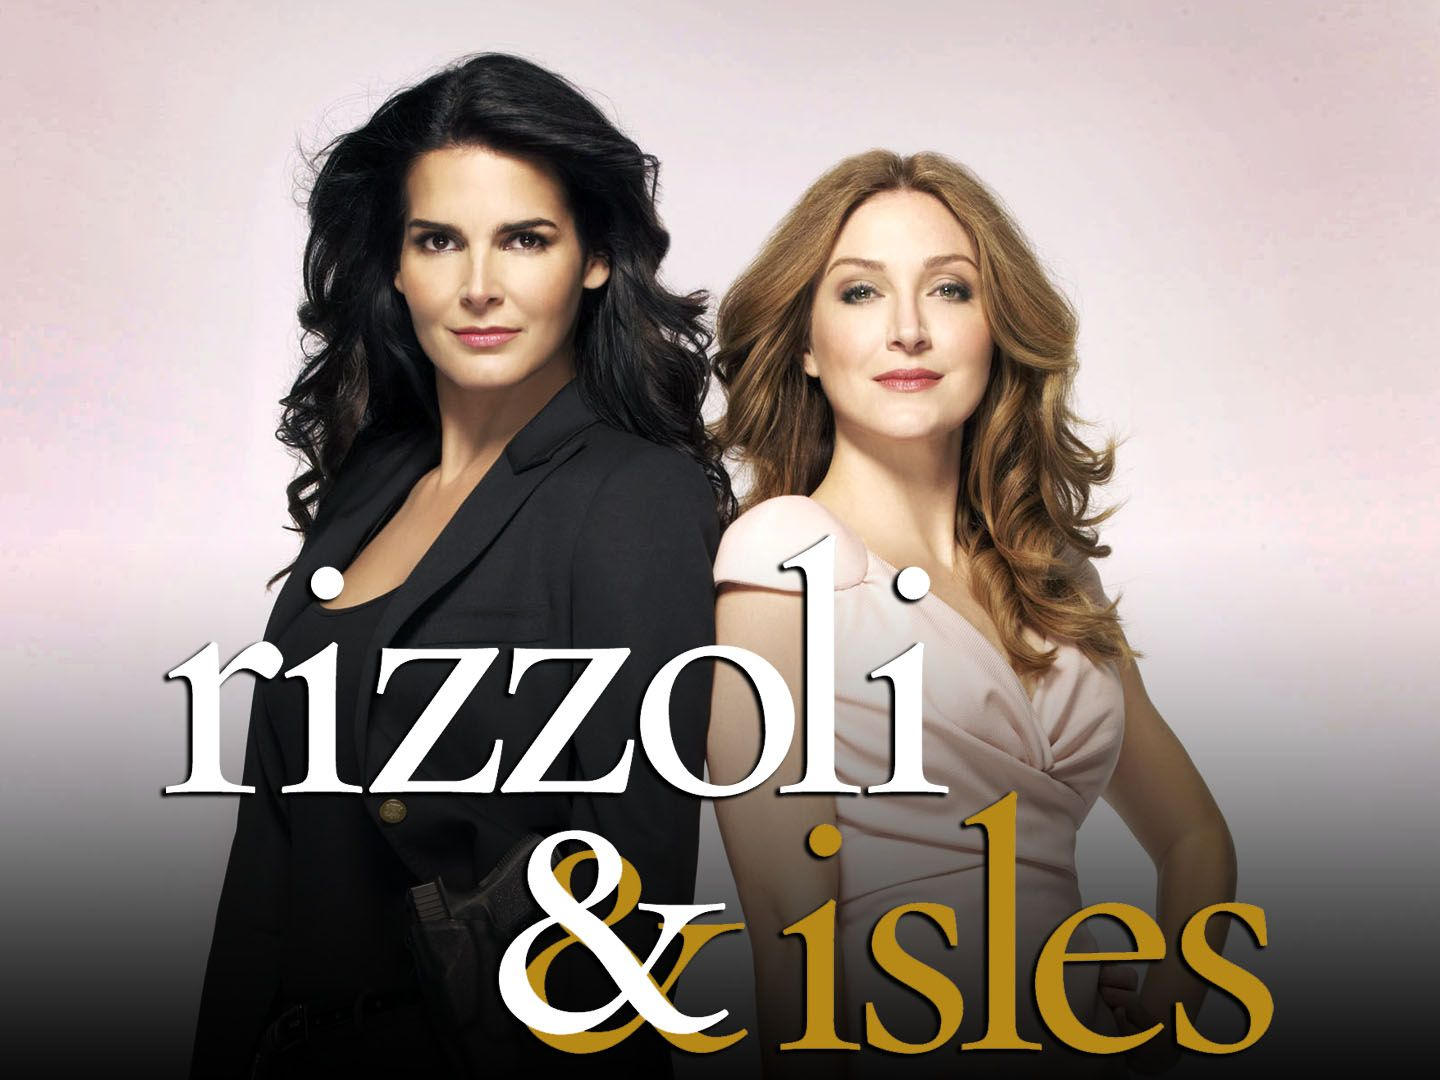 117 Best Images About Rizzoli & Isles On Pinterest  Seasons Posters,  Season Premiere And Movies Free